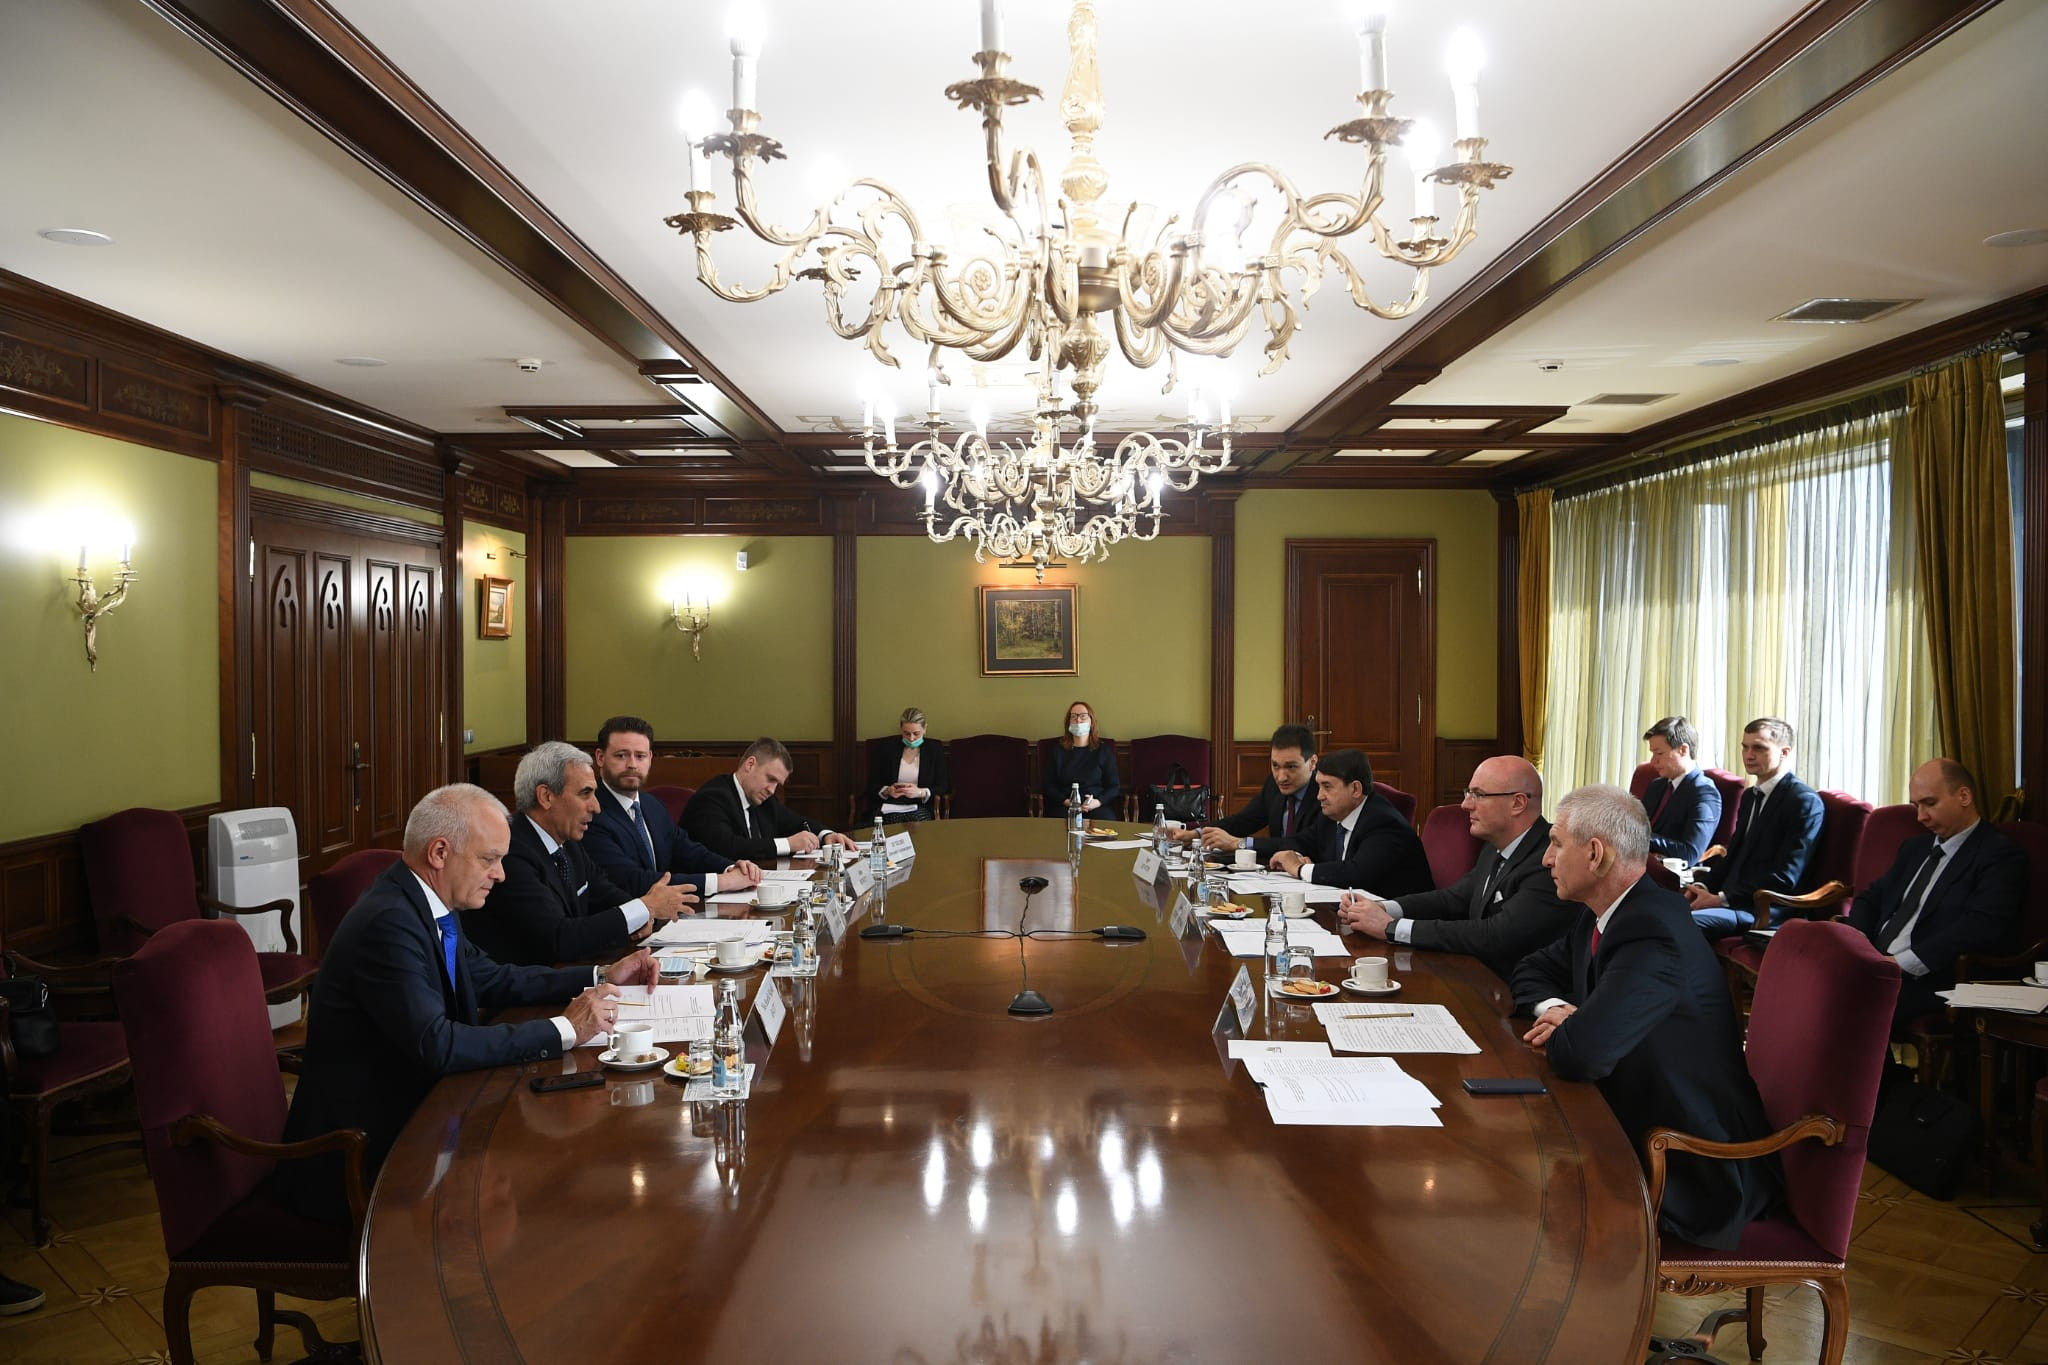 High-level Russian dignitaries met with SportAccord officials to discuss preparations for the event ©SportAccord